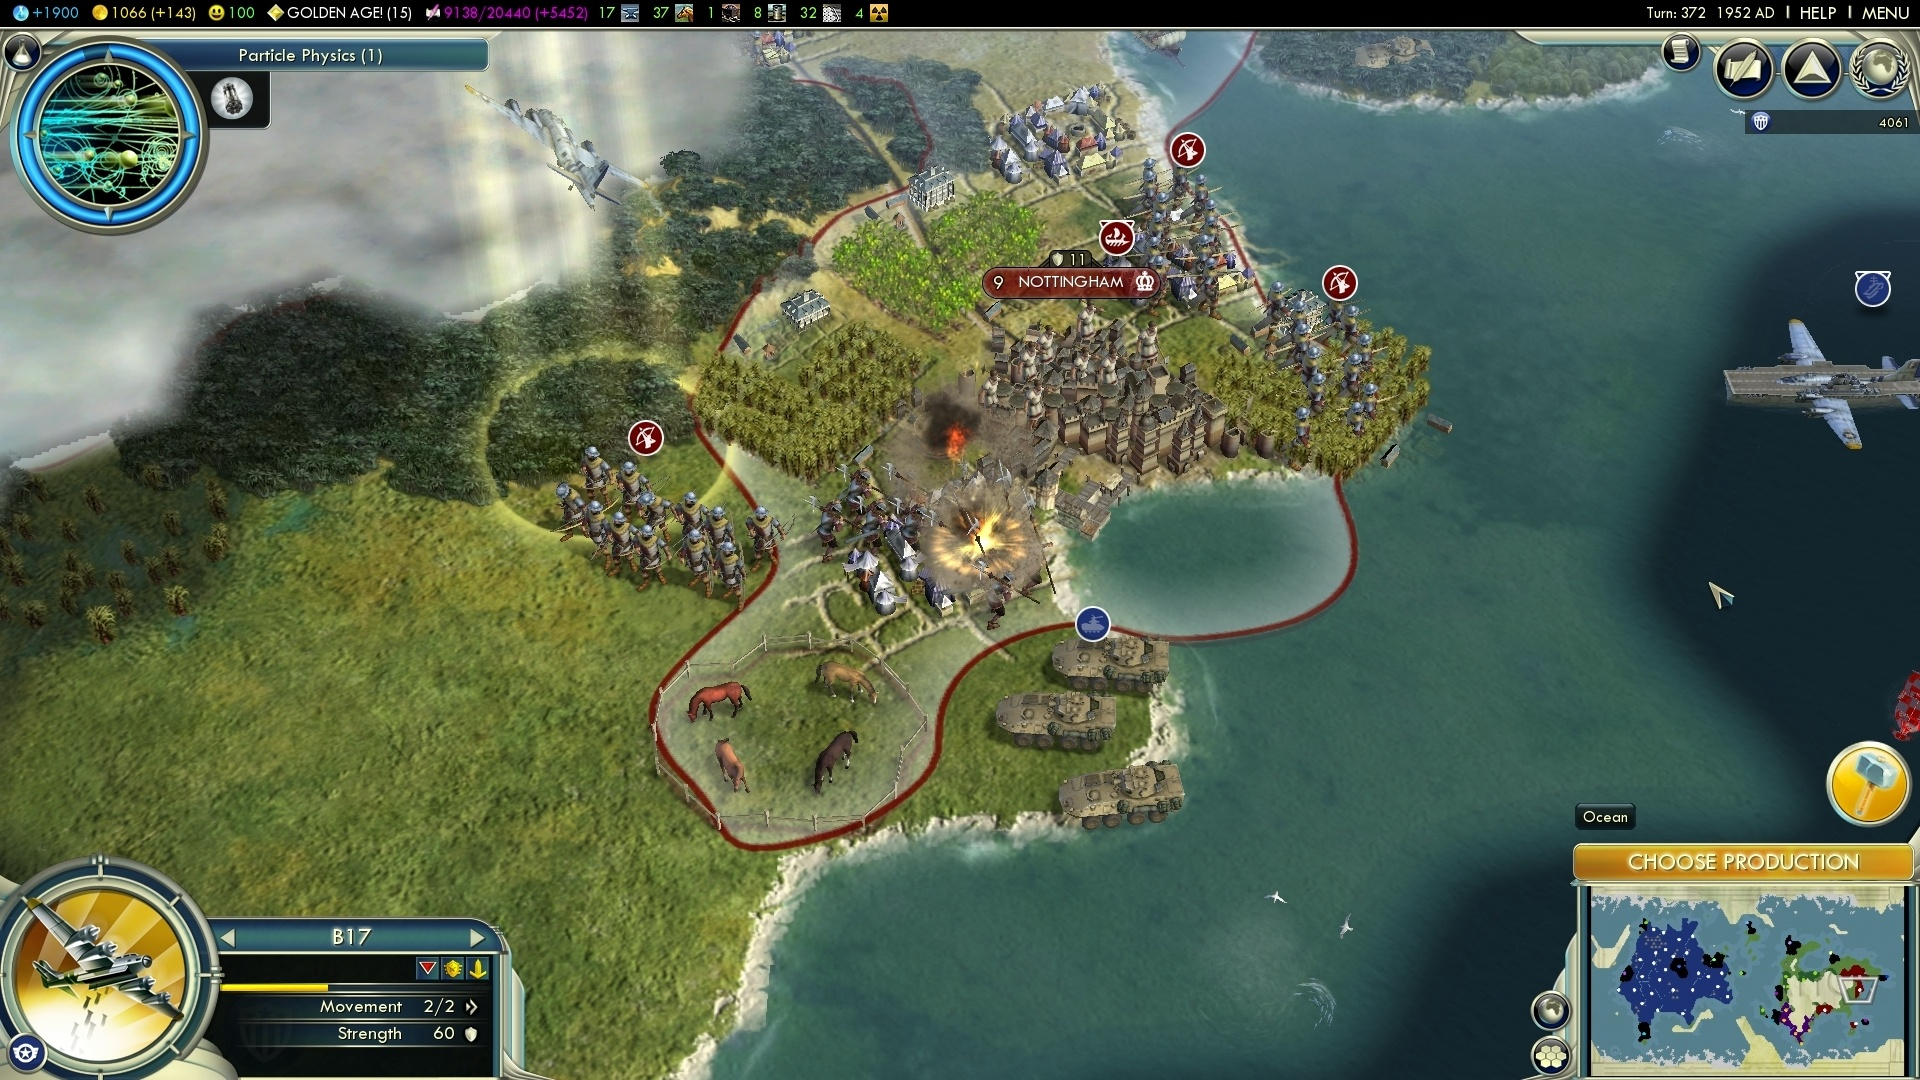 how to download steam workshop mods without having the game